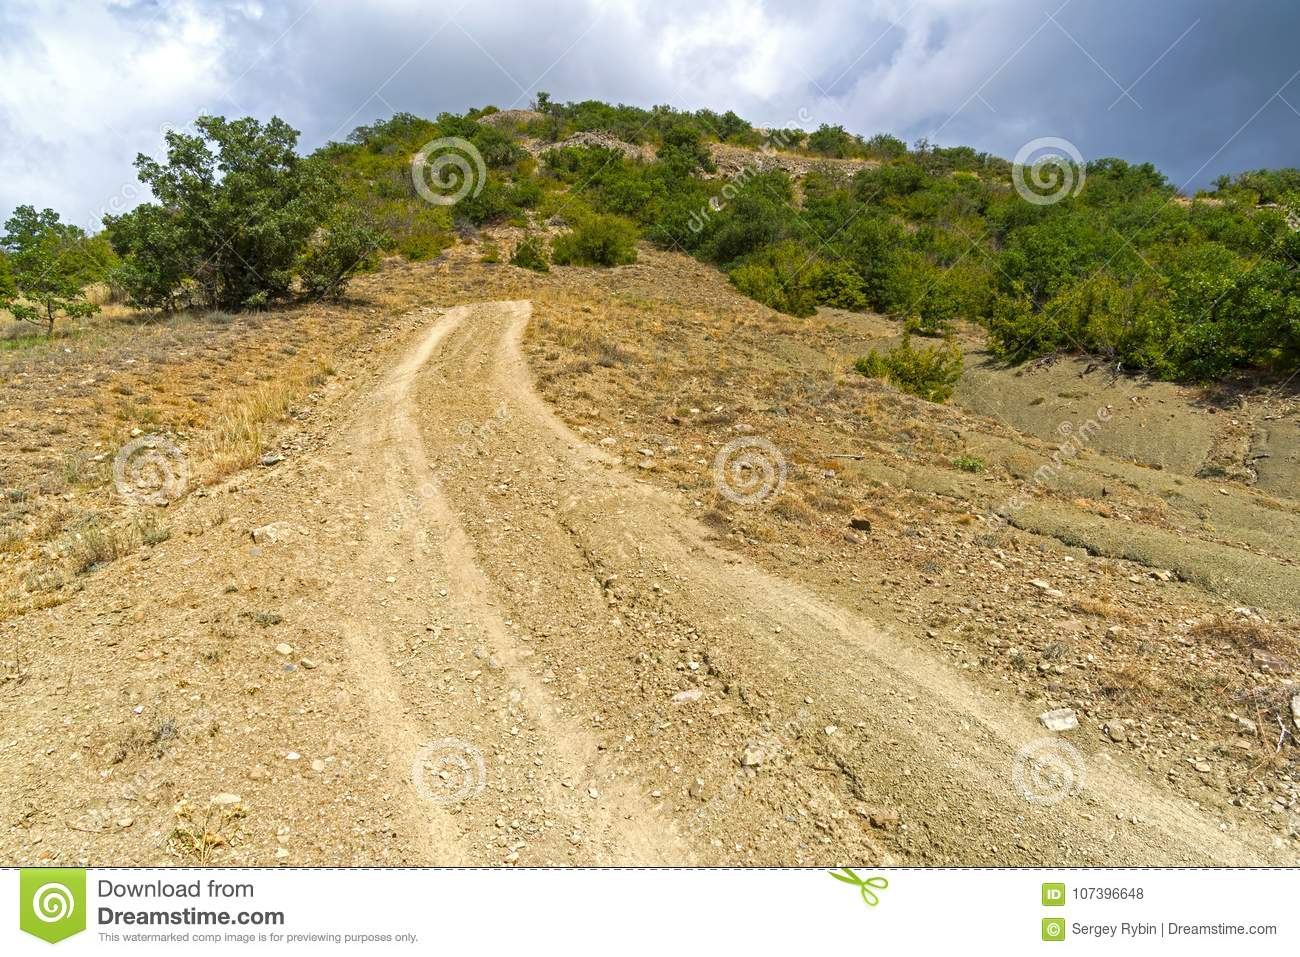 Steep descent on a dirt road.